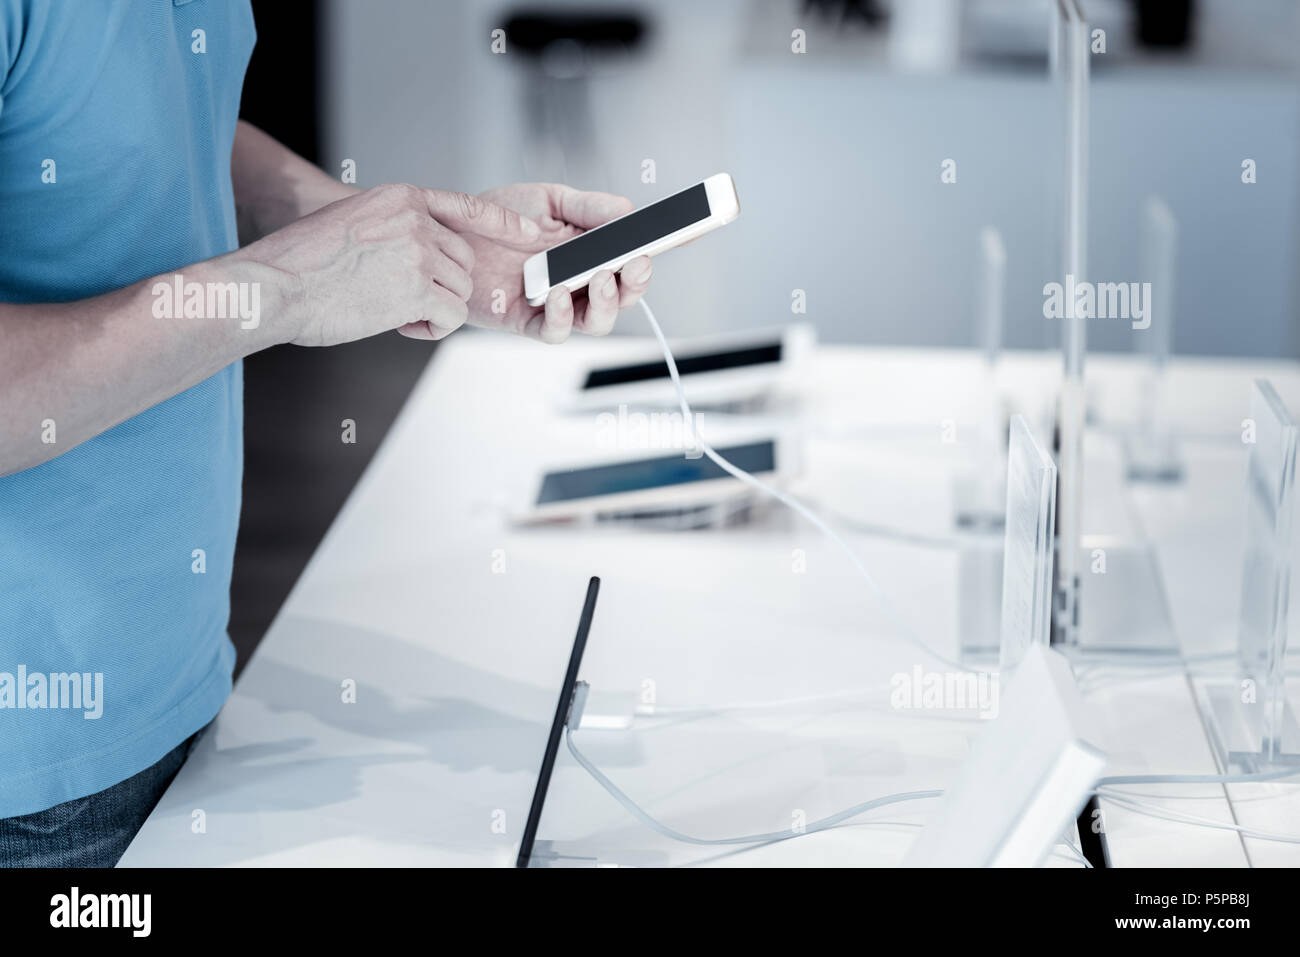 Amazing tiny smartphone in the hands of a customer - Stock Image